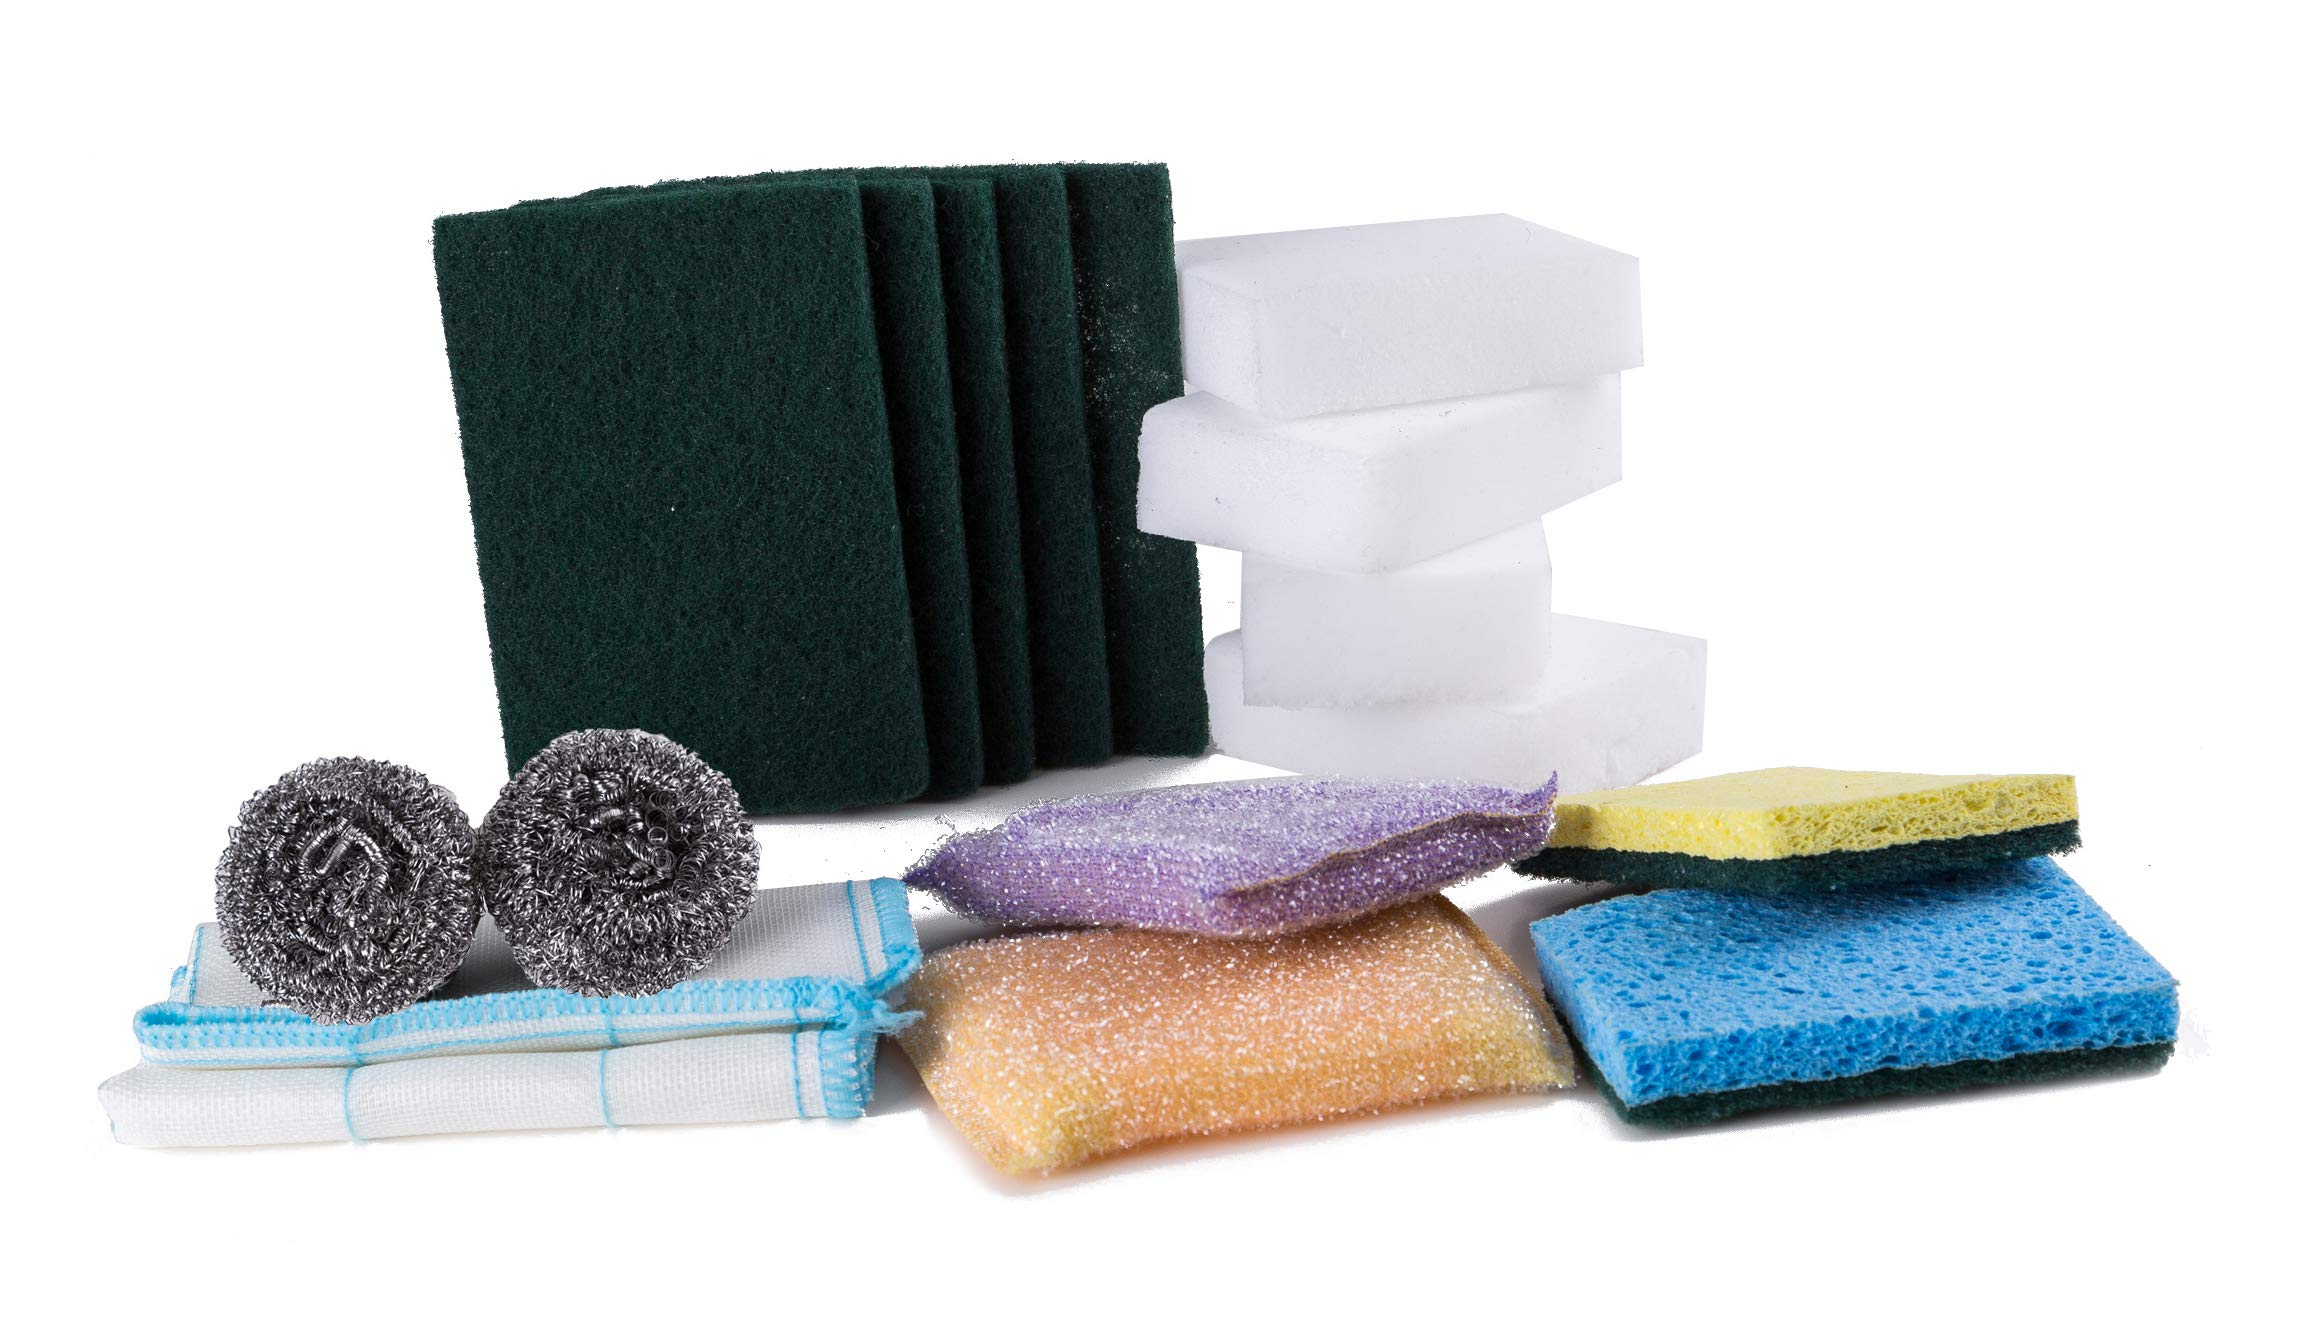 16 Pcs Kitchen & Household Scouring Pads Heavy Duty Cleaning Set Include Scrub Pads-Scrub Sponge-Scour Pad-Scrubber Non-Scratch Anti-Grease Technology-Get All You Needs in 1 Pack